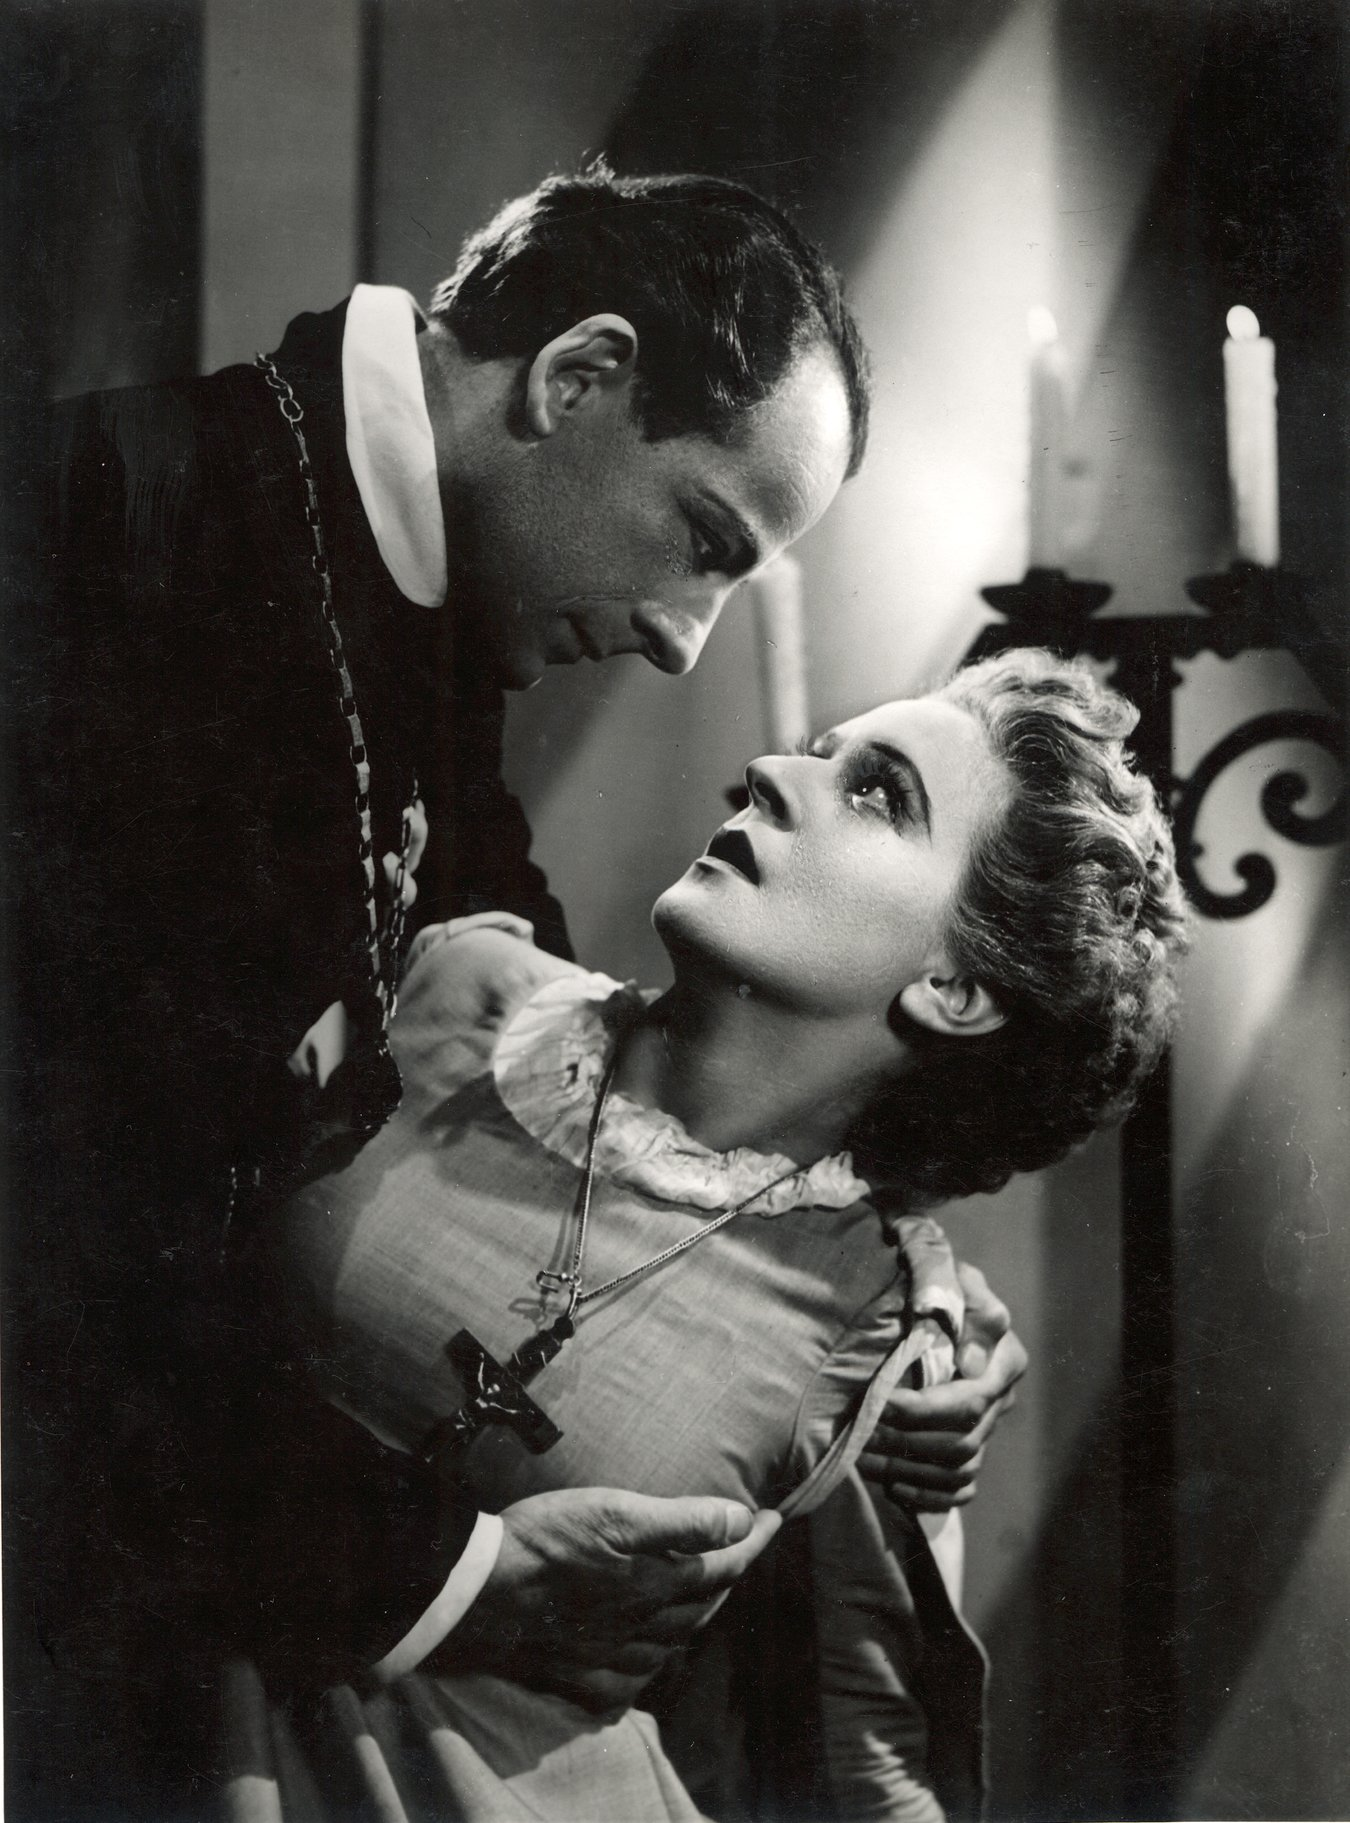 A man leans over a frightened young woman.